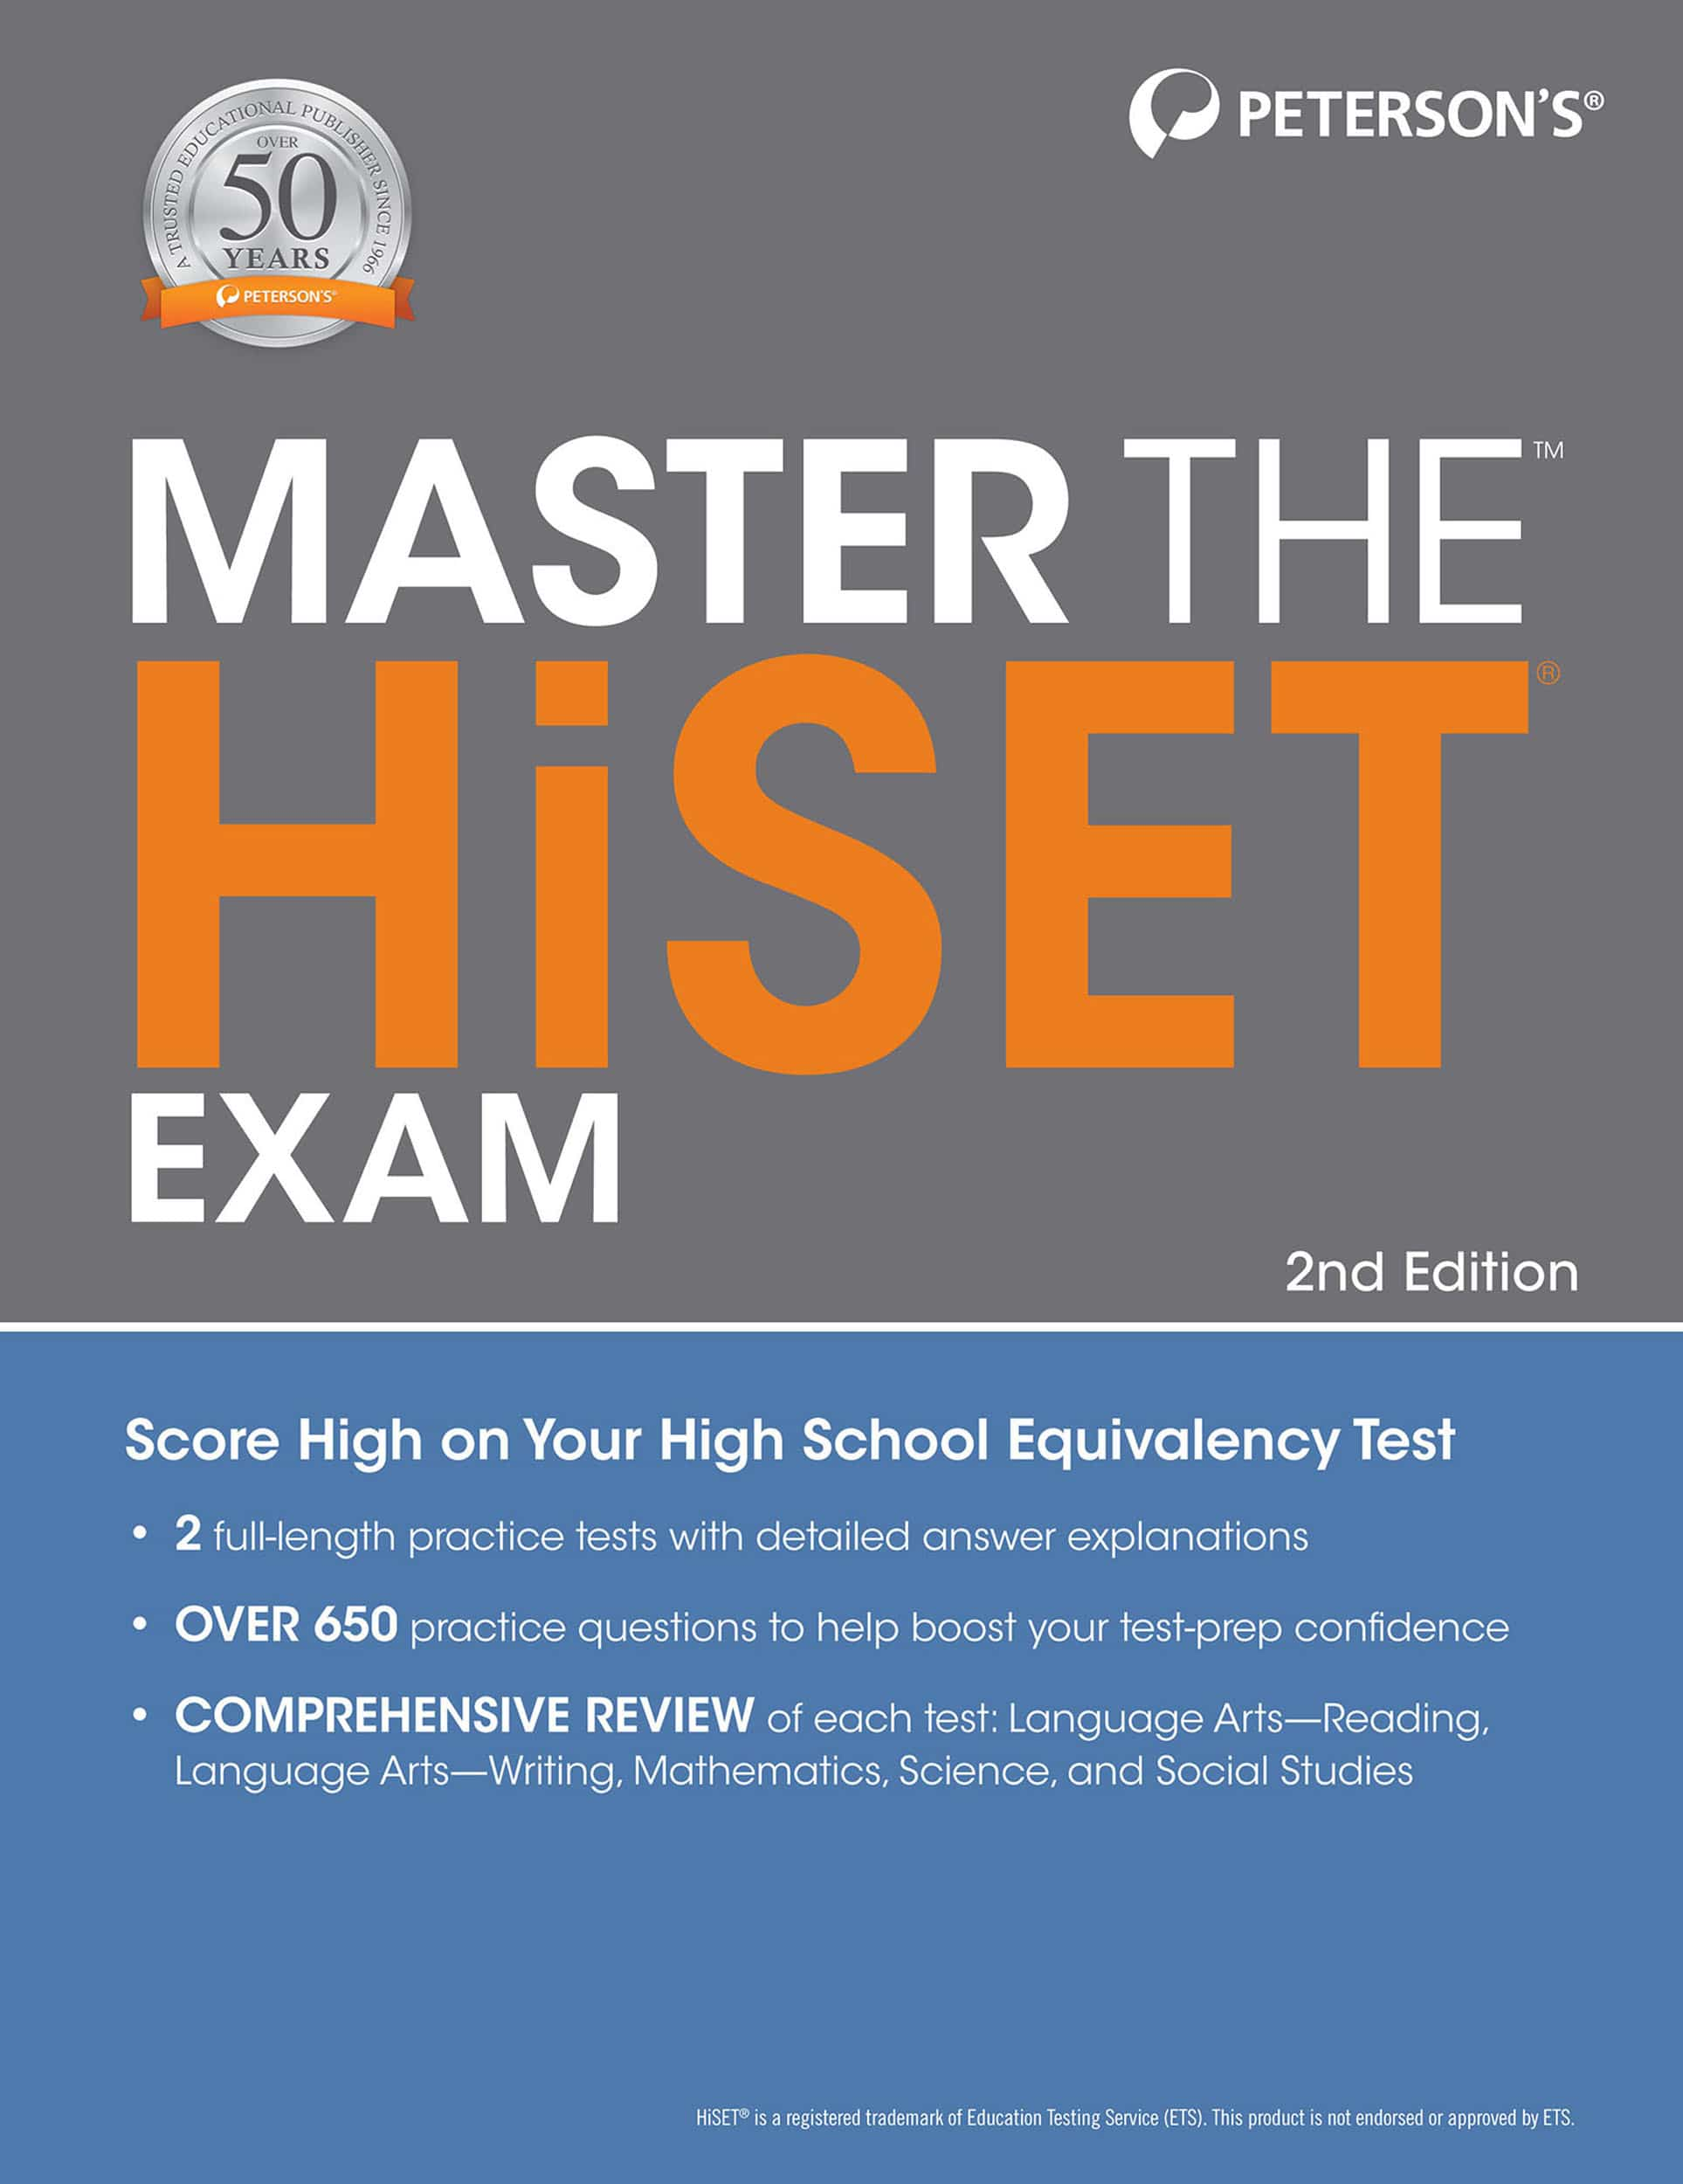 Master the™ HiSET